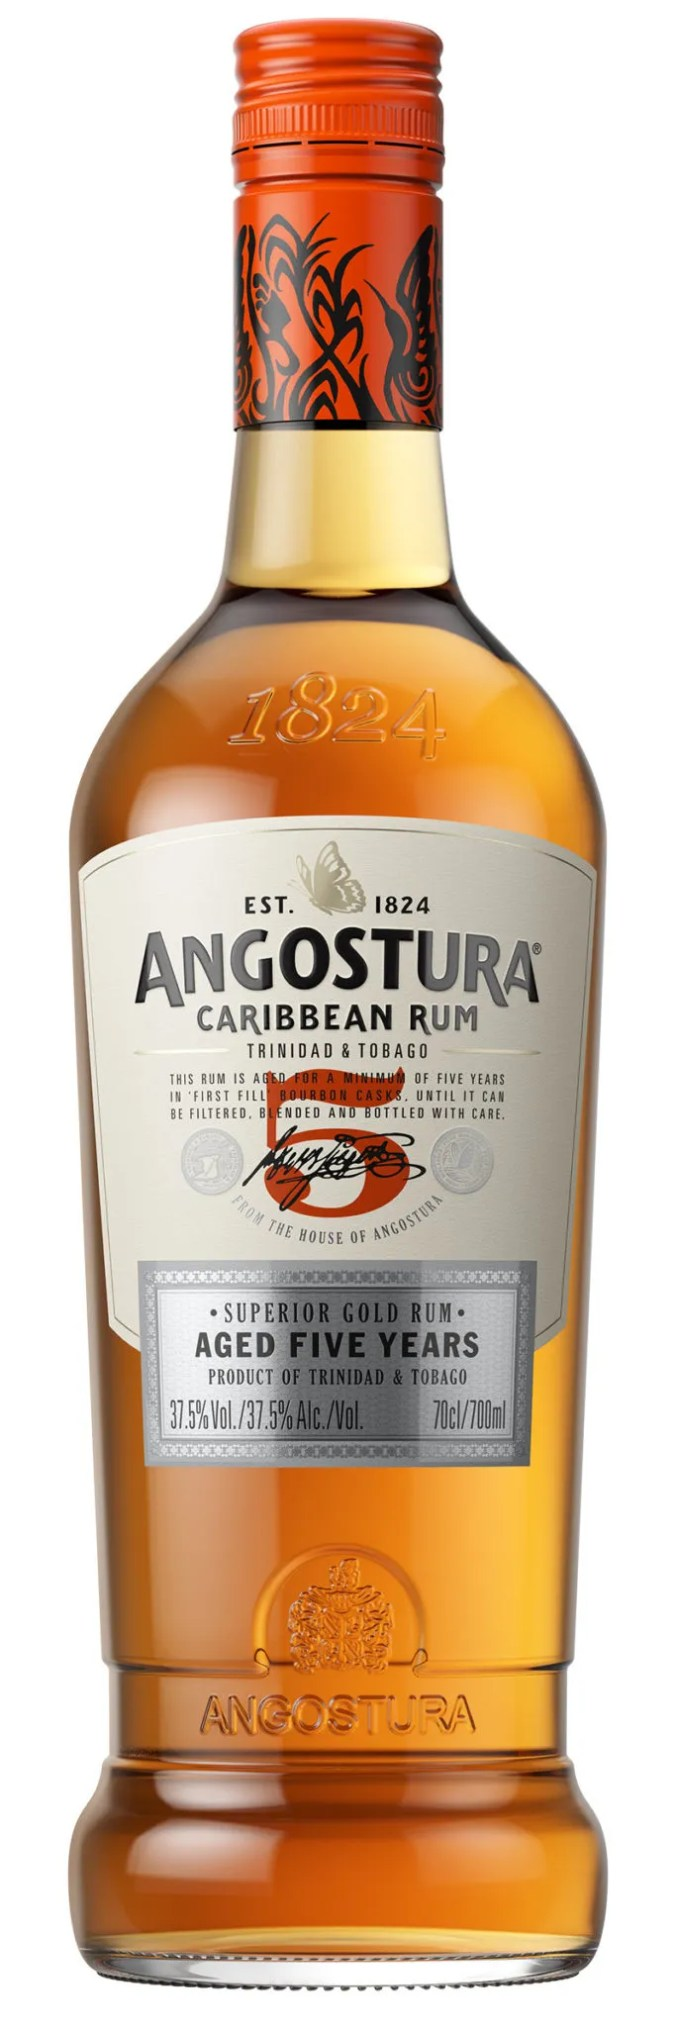 Angostura 5 year old Superior Gold rum from Trinidad